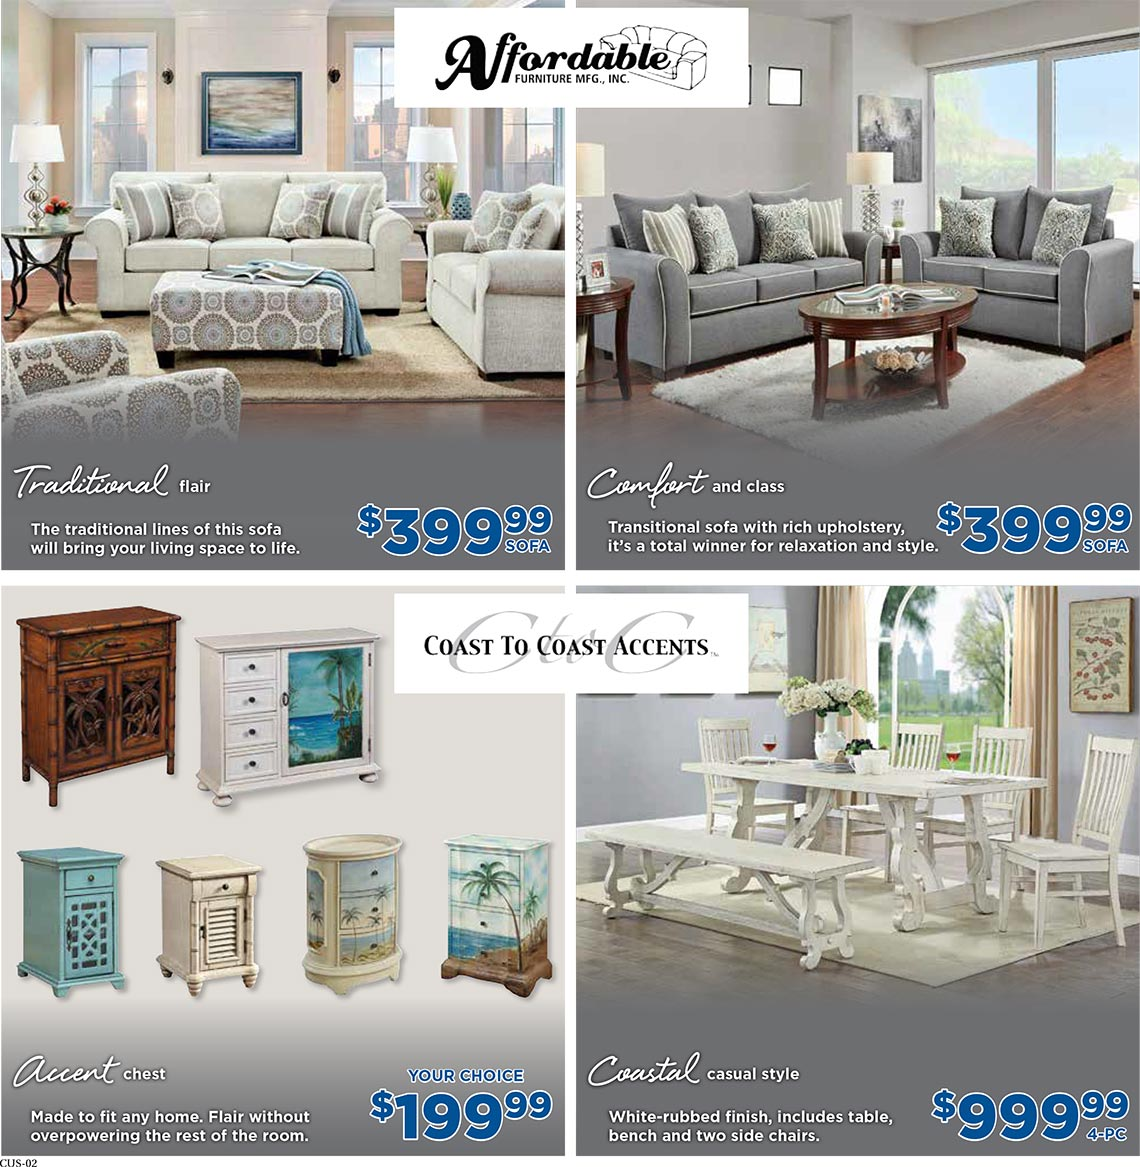 The Furniture Warehouse Newspaper - Page 2